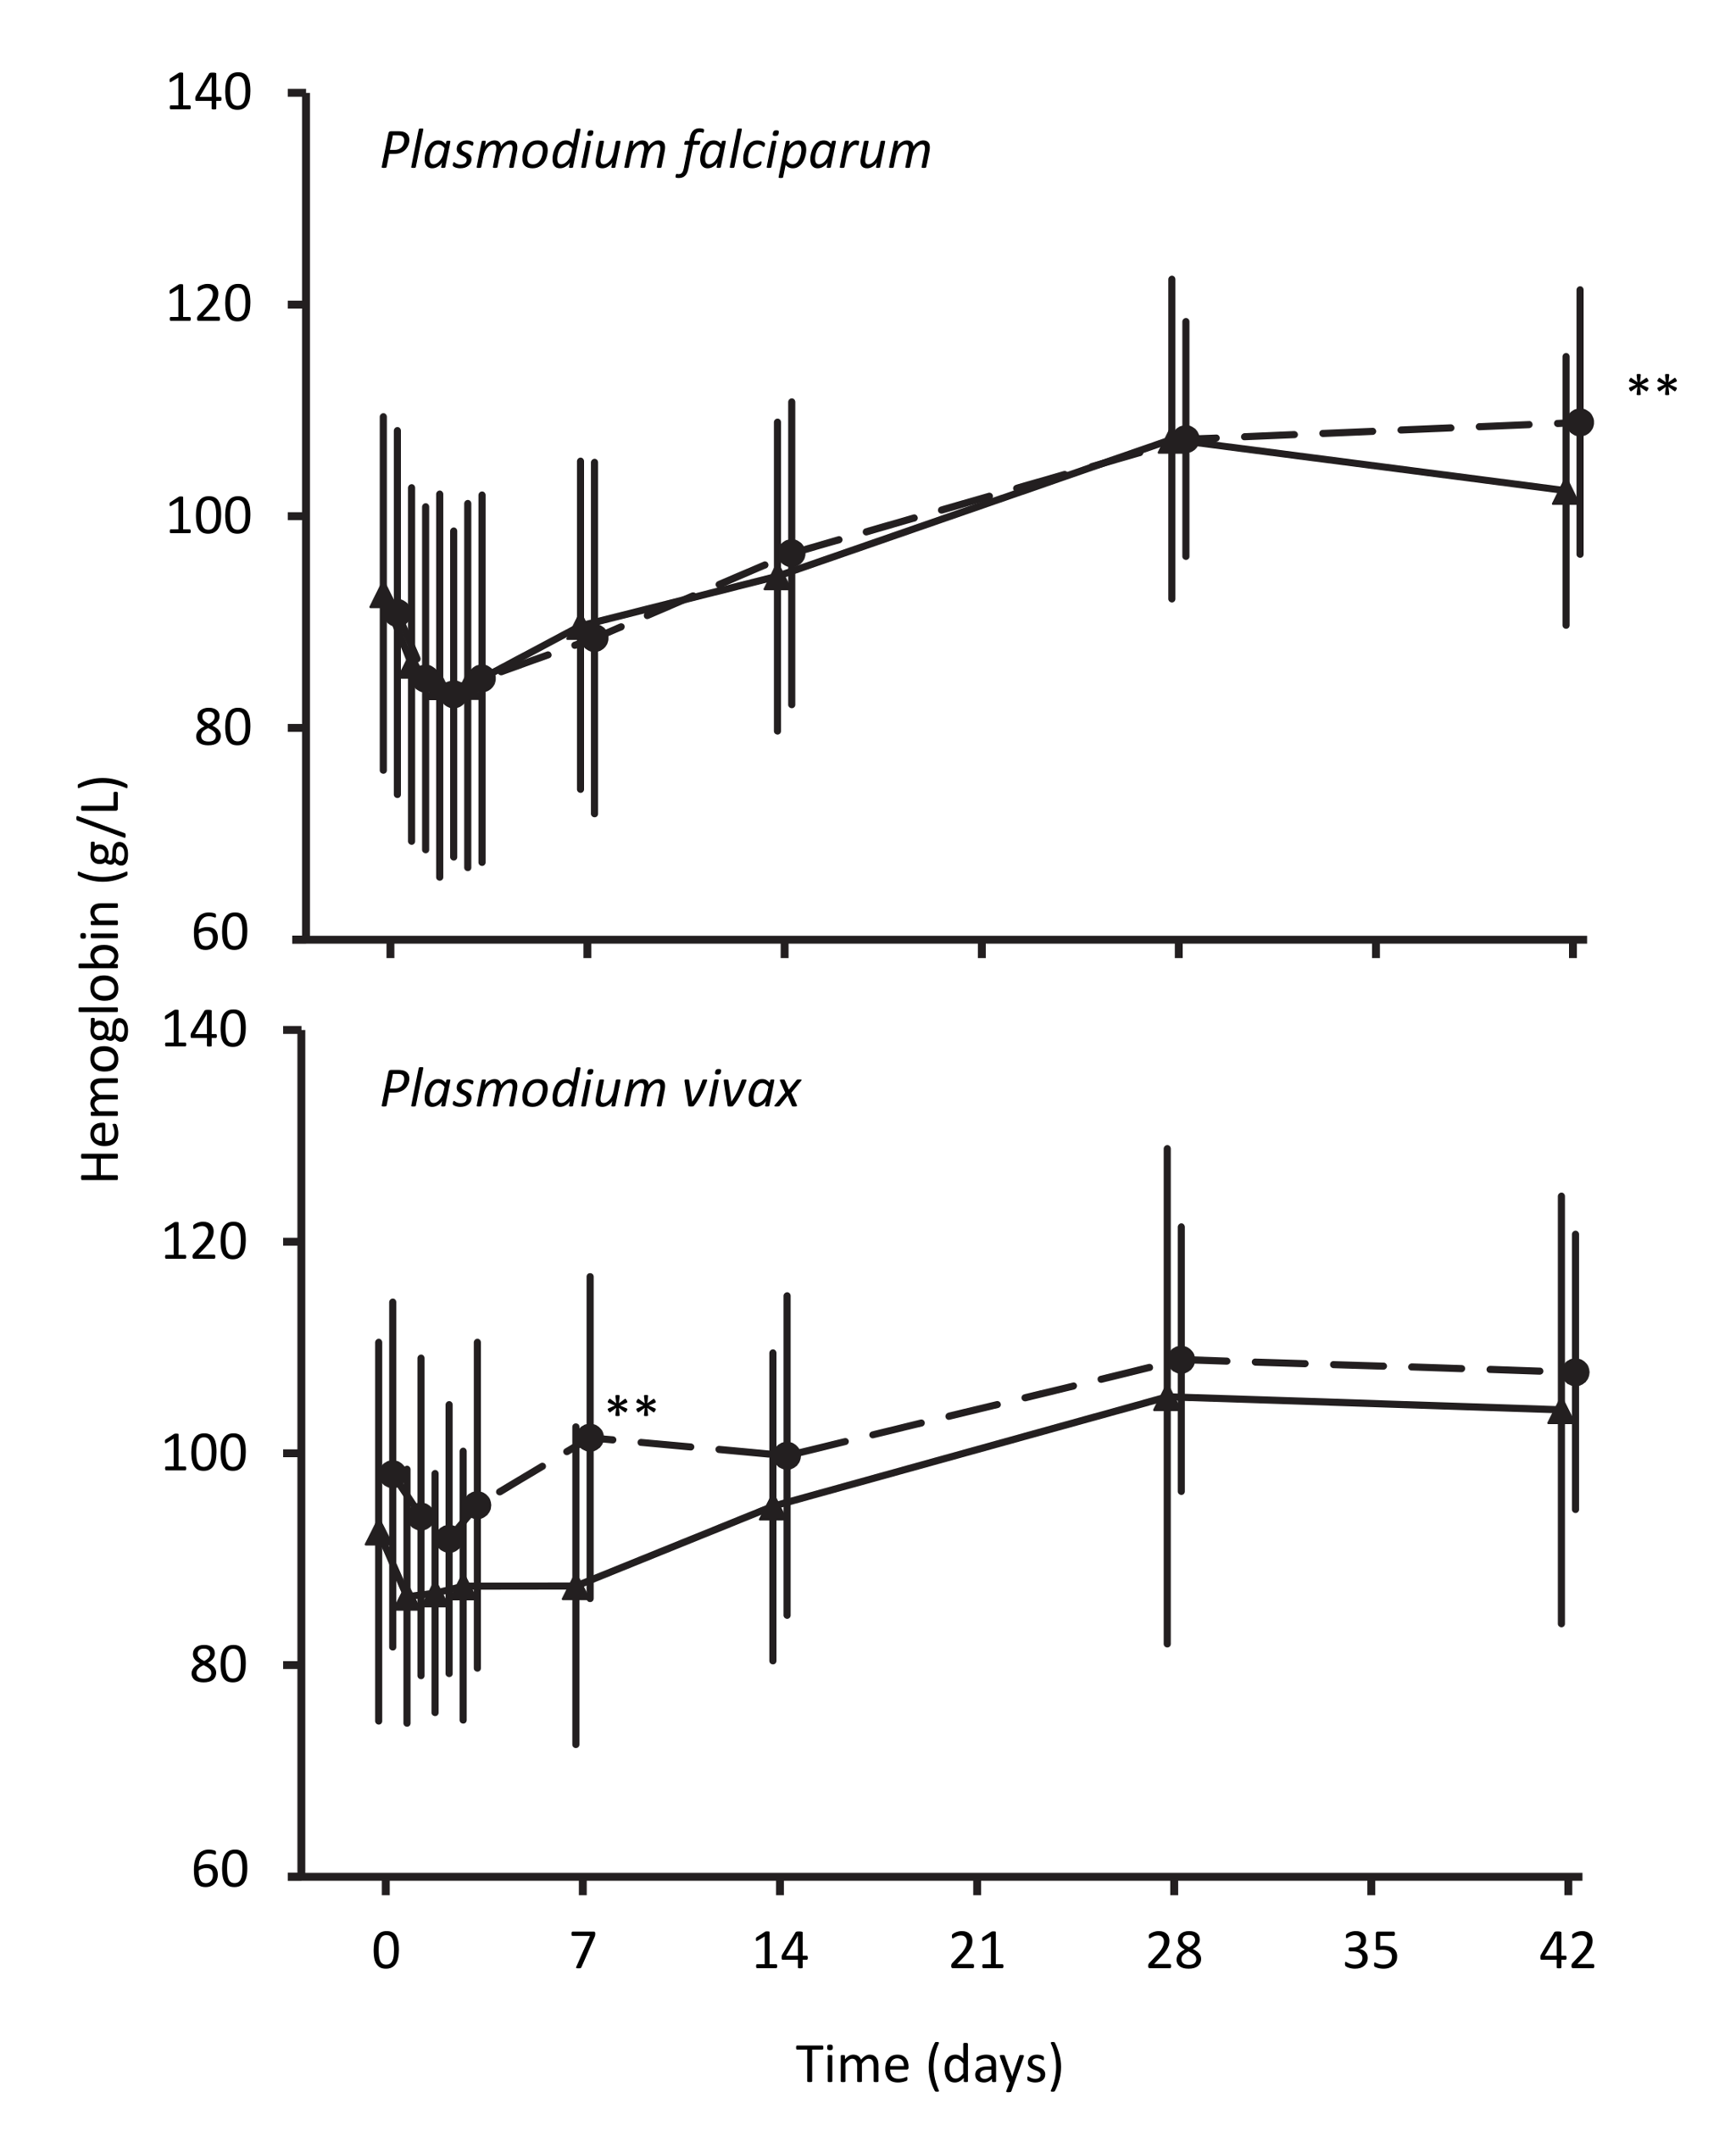 Hemoglobin concentrations during follow-up after treatment for <i>P. falciparum</i> and for <i>P. vivax</i>.